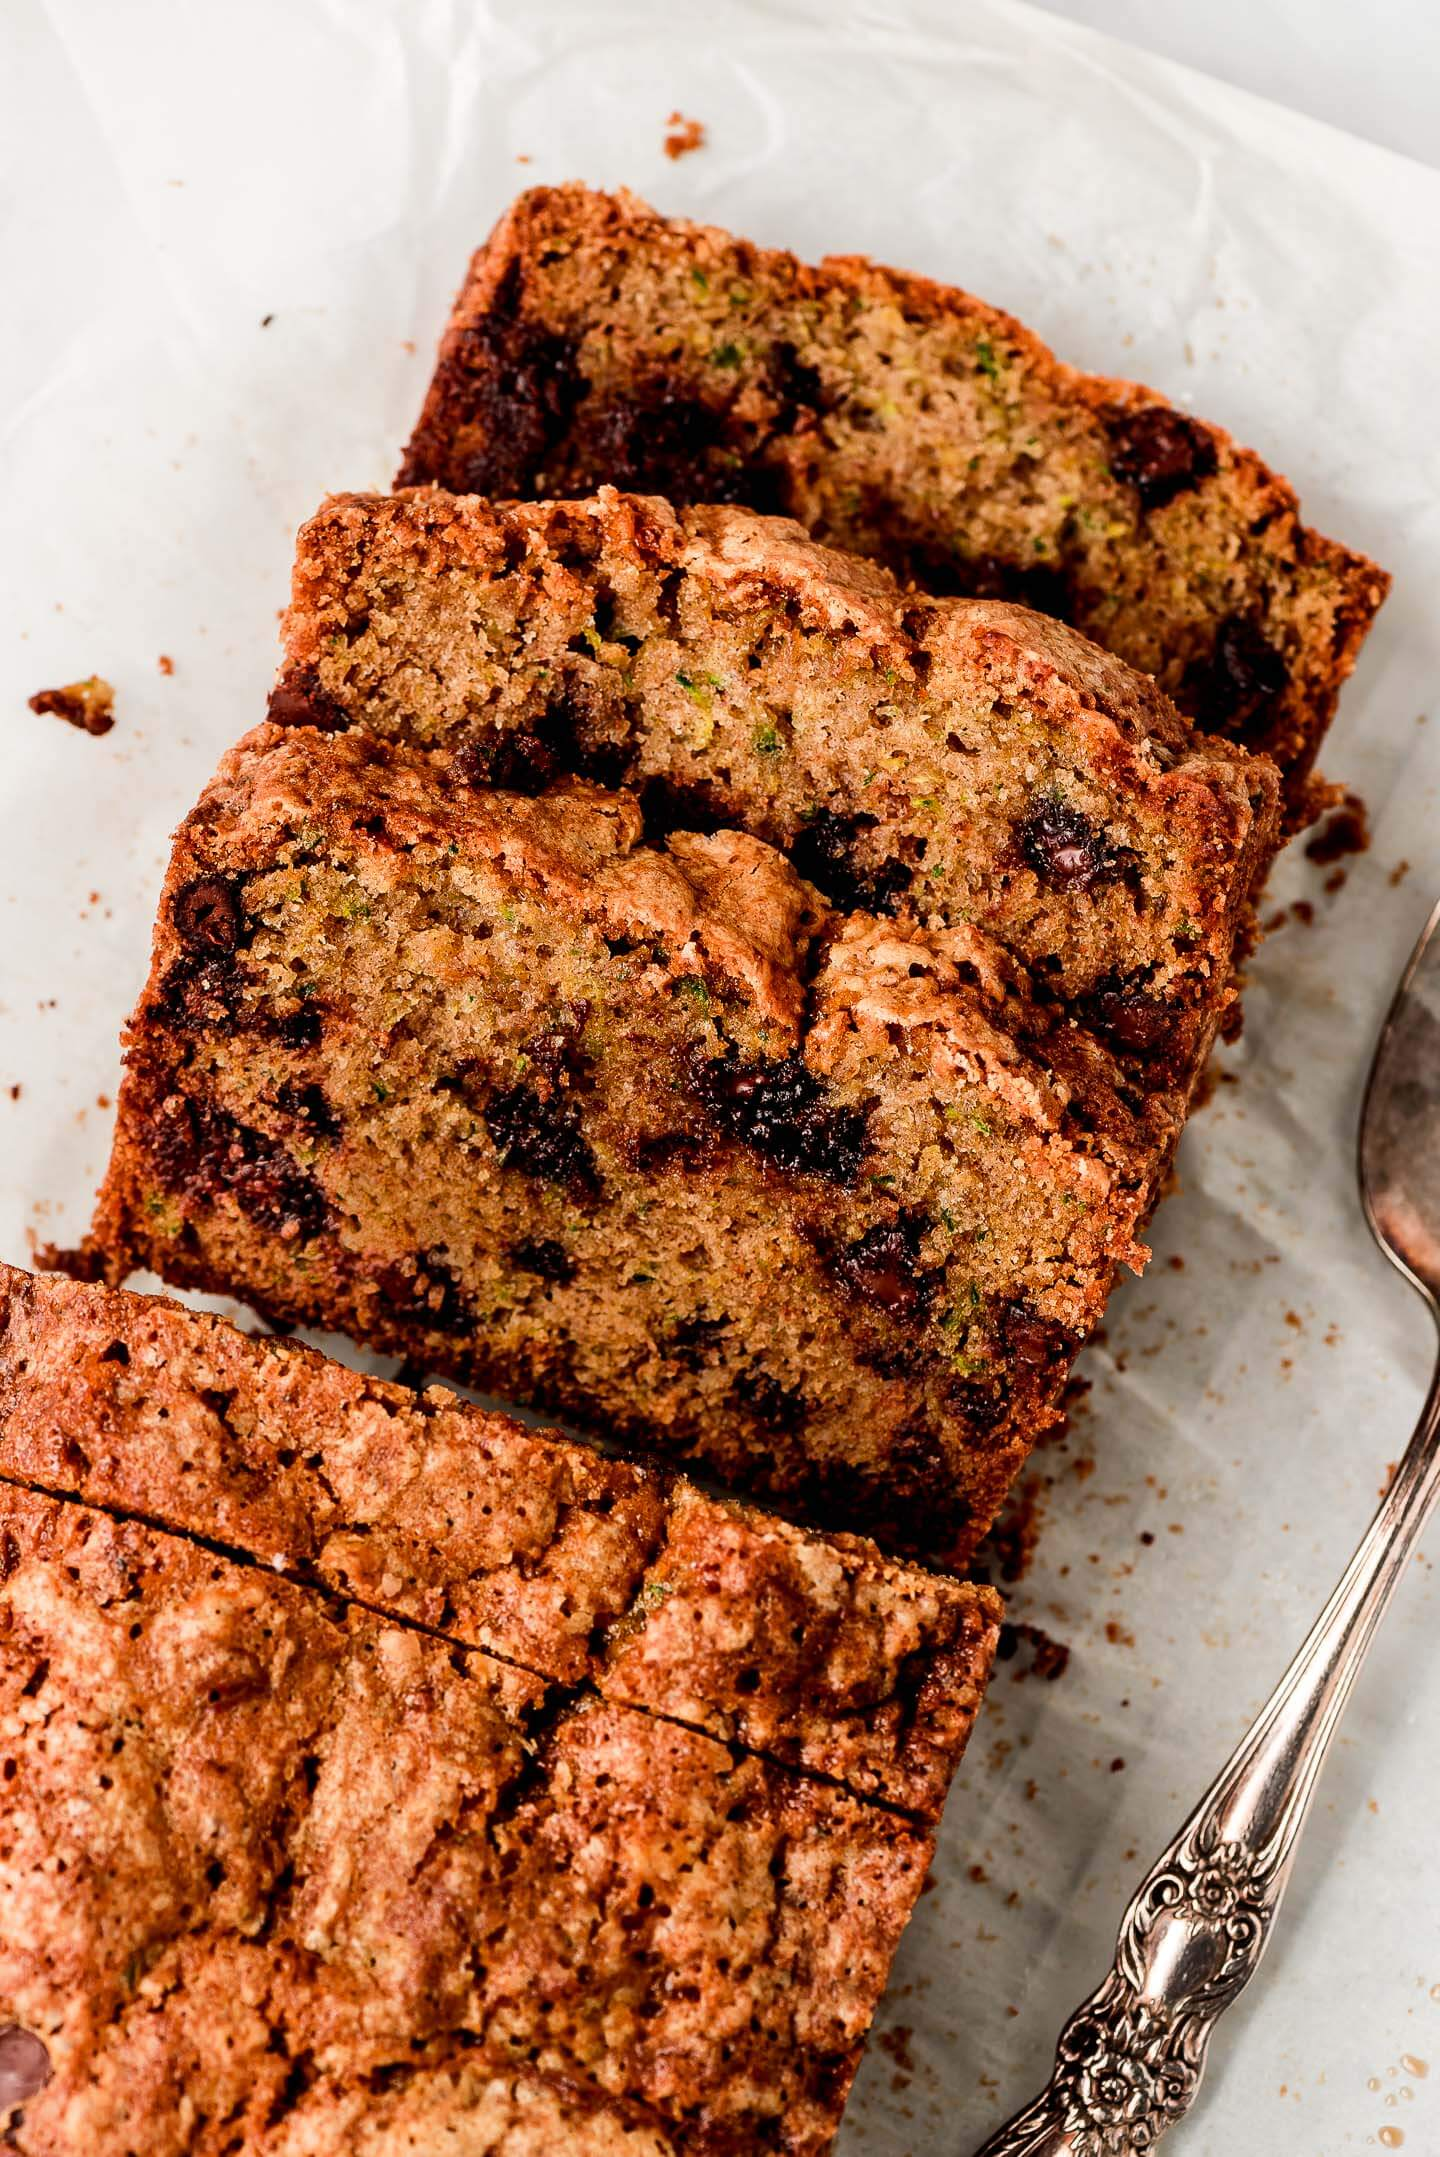 Top view of sliced Chocolate Chip Zucchini Bread.